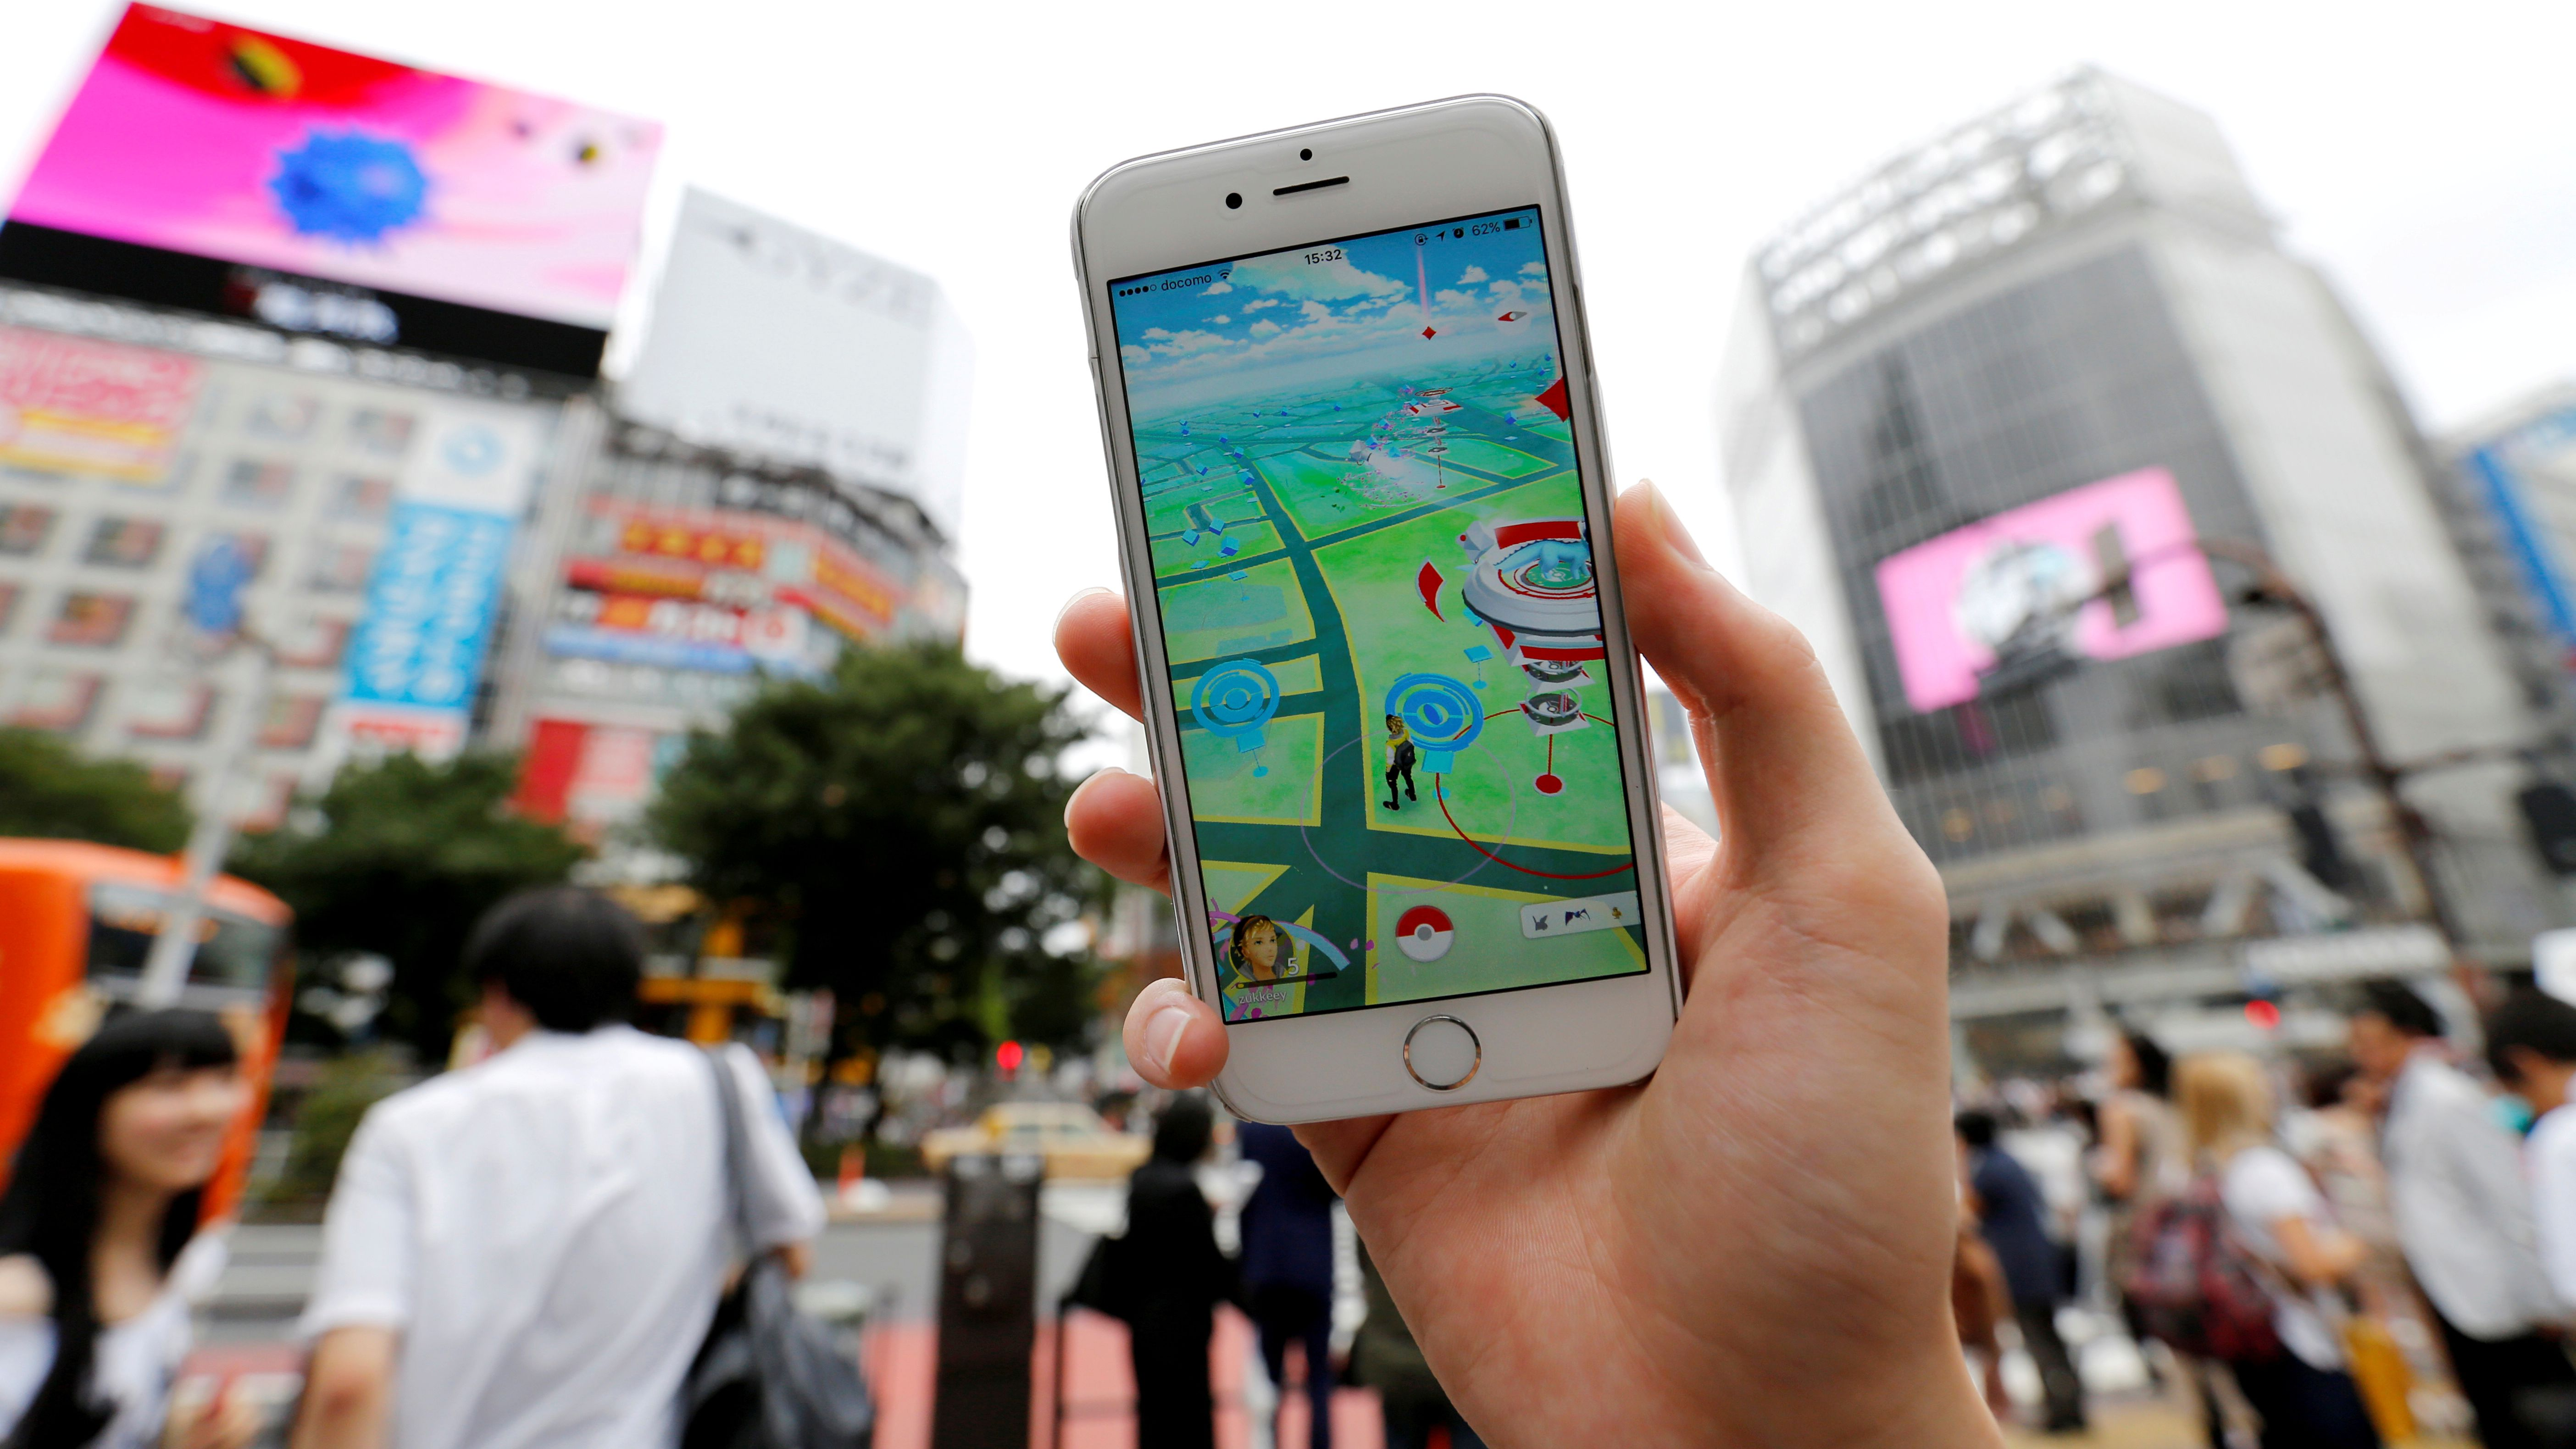 """A man poses with his mobile phone displaying the augmented reality mobile game """"Pokemon Go"""" by Nintendo in front of a busy crossing in Shibuya district in Tokyo, Japan, July 22, 2016."""